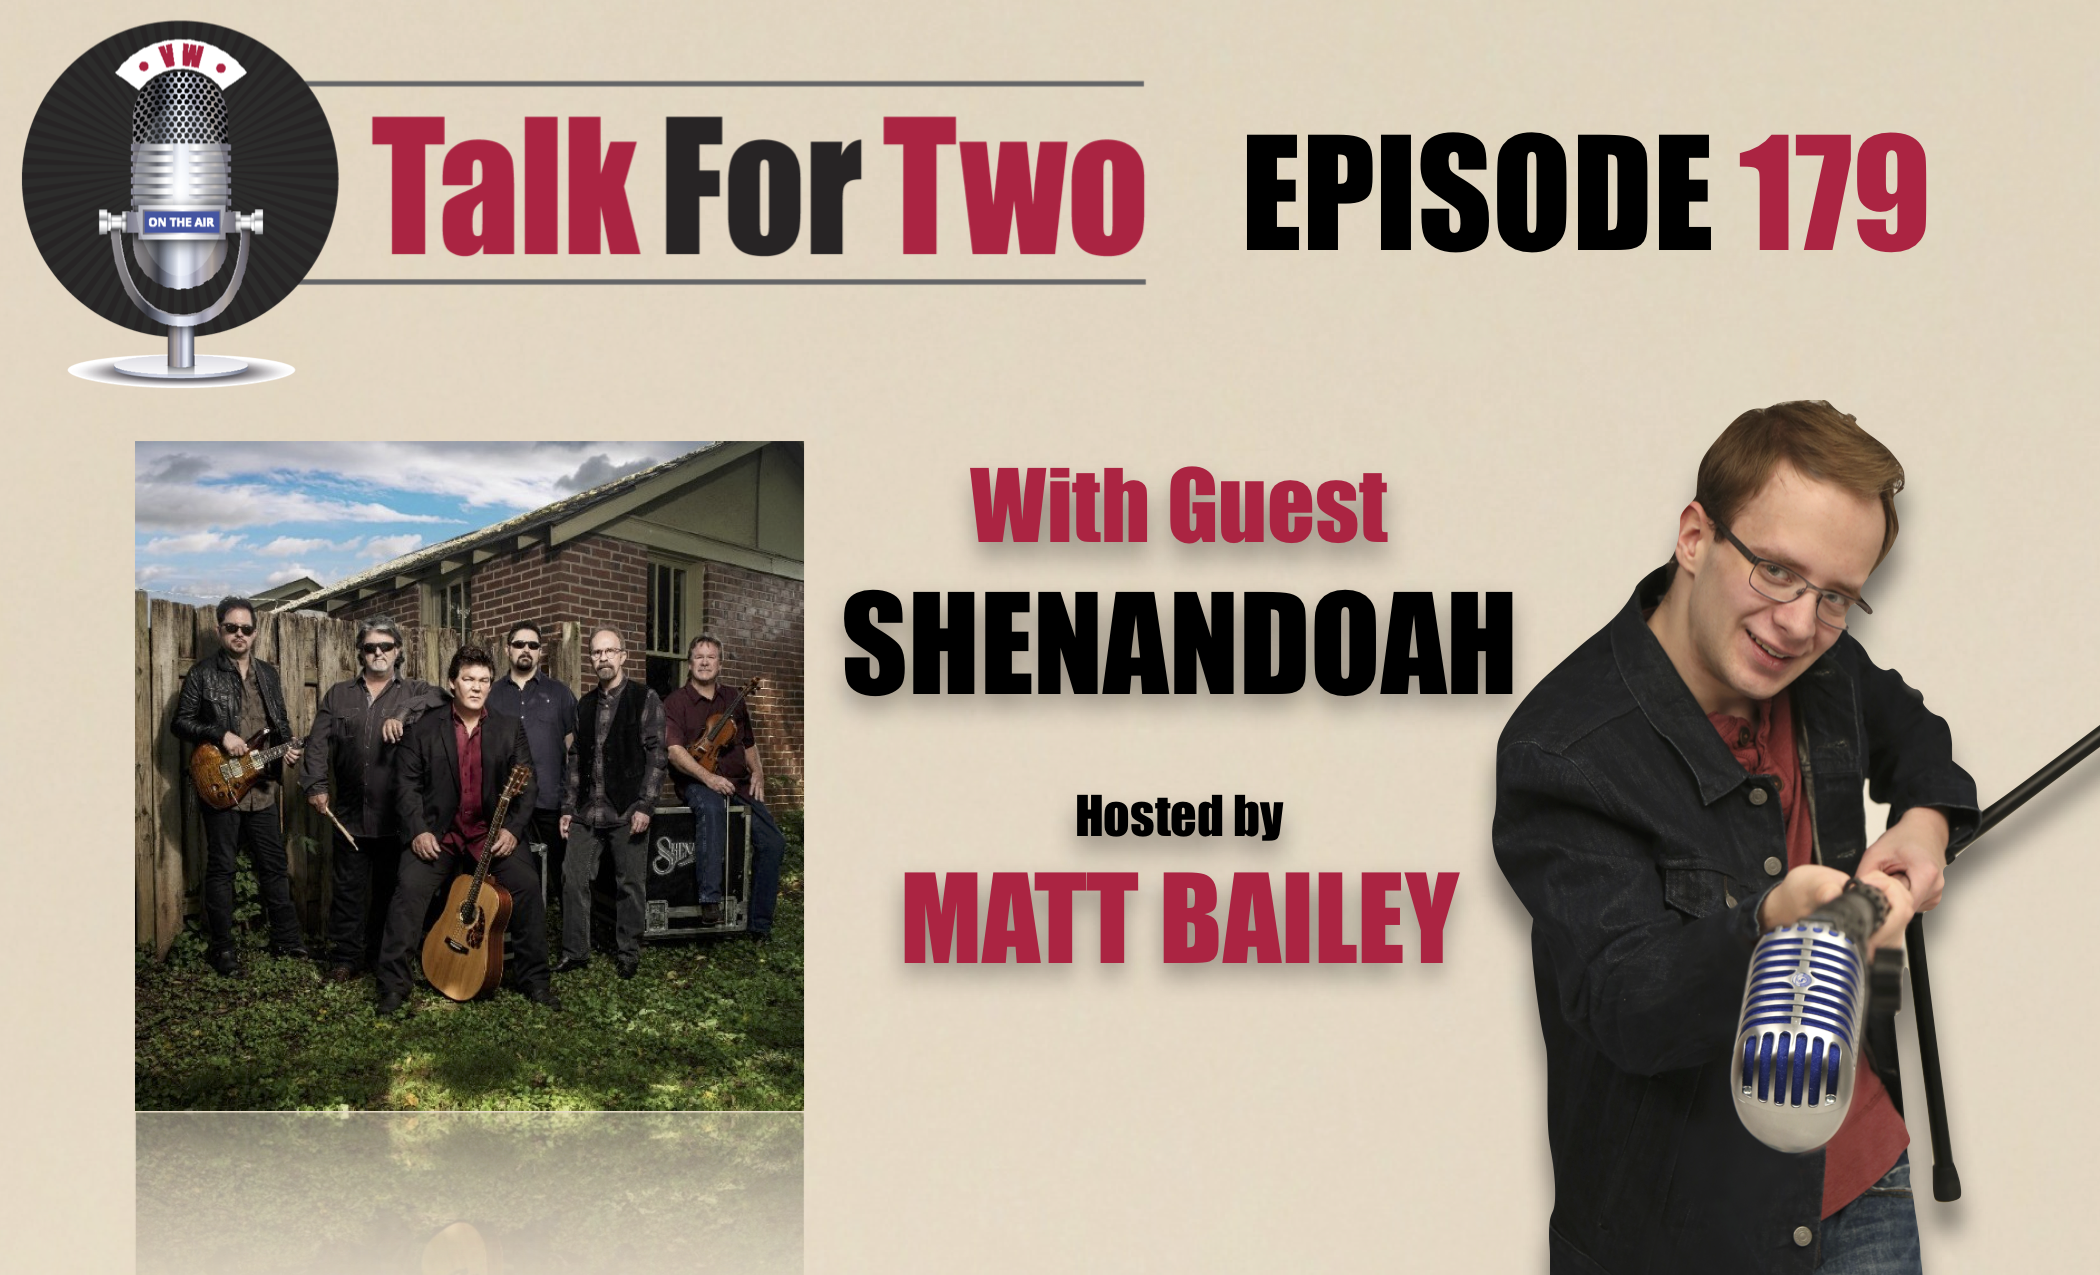 Shenandoah, Marty Raybon, Mike McGuire, Matt Bailey, Talk For Two talk show